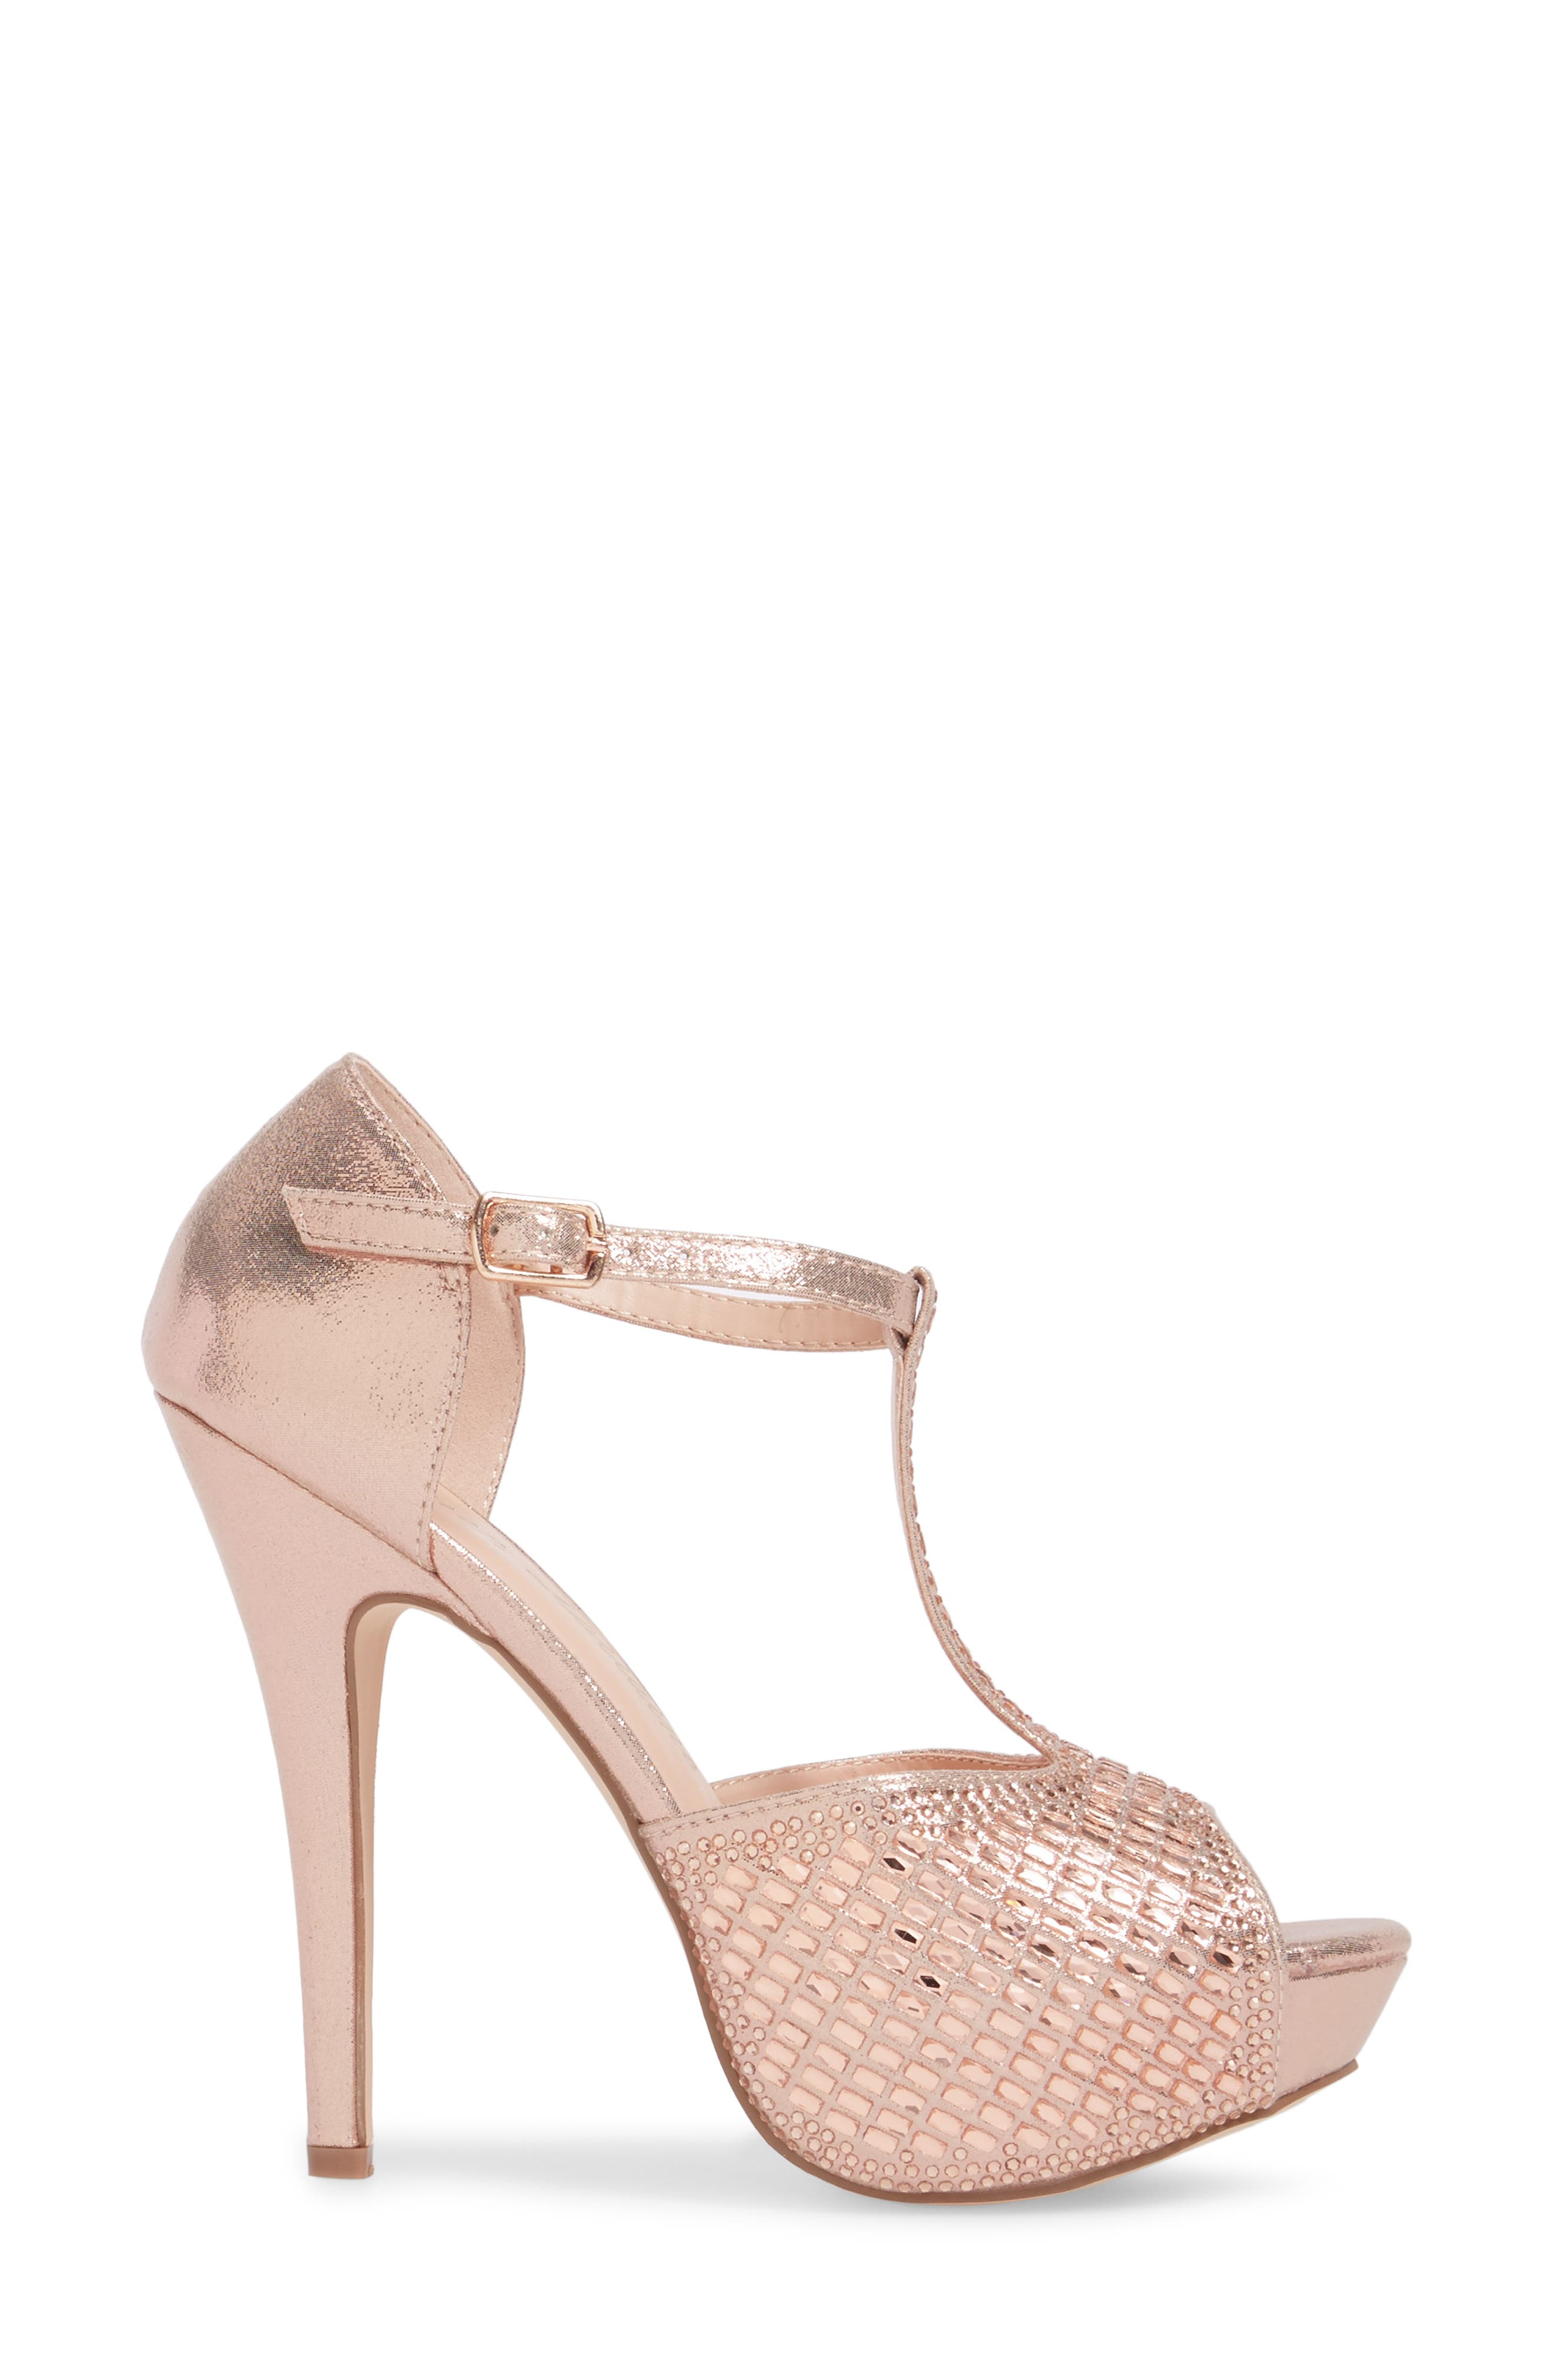 Vivian 4 Crystal Embellished Sandal,                             Alternate thumbnail 9, color,